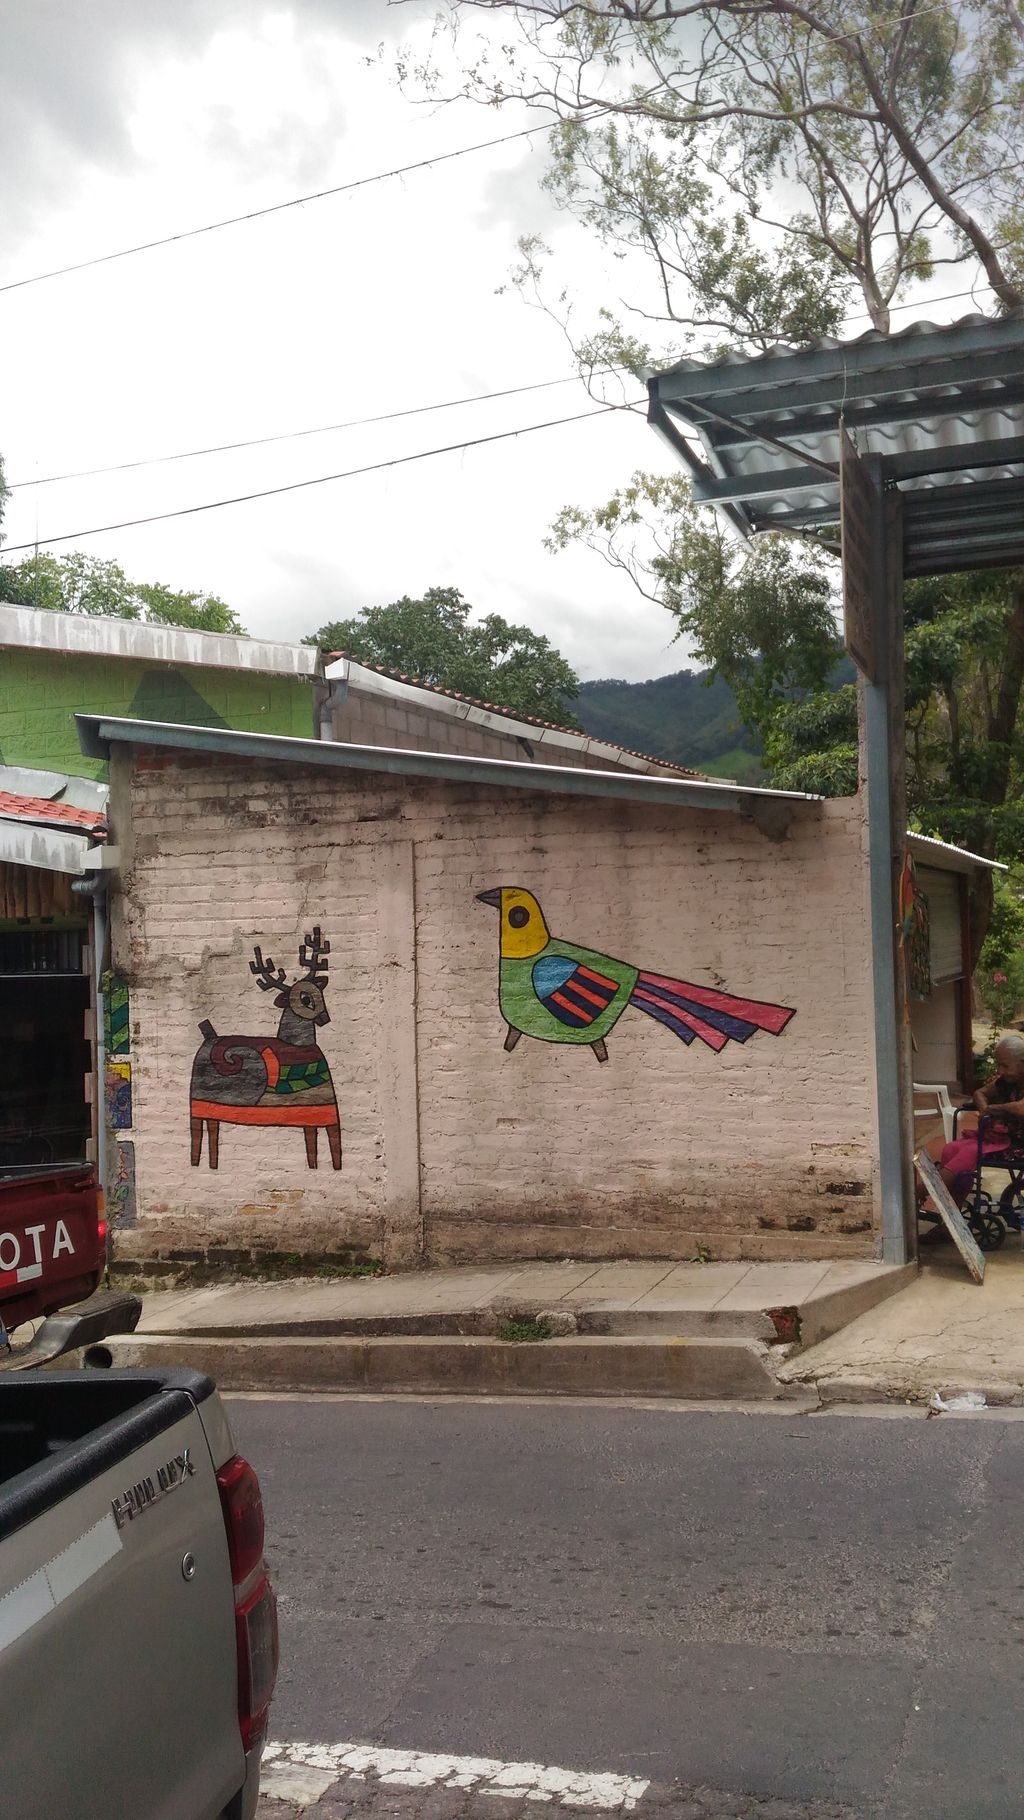 Hey, Guess What: El Salvador Is Actually Pretty Great! - Part 1 27